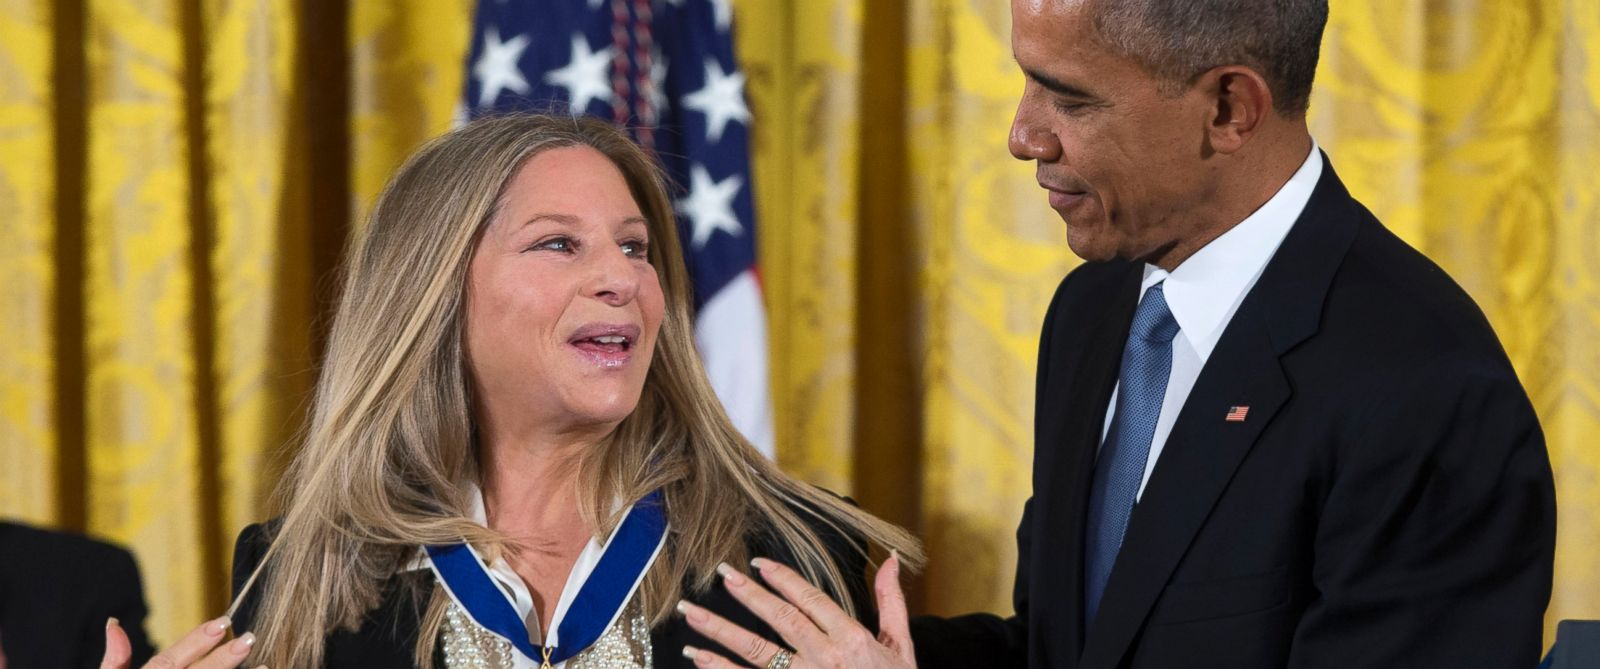 PHOTO: President Barack Obama, right, presents the Presidential Medal of Freedom to Barbra Streisand during a ceremony in the East Room of the White House, Nov. 24, 2015, in Washington.